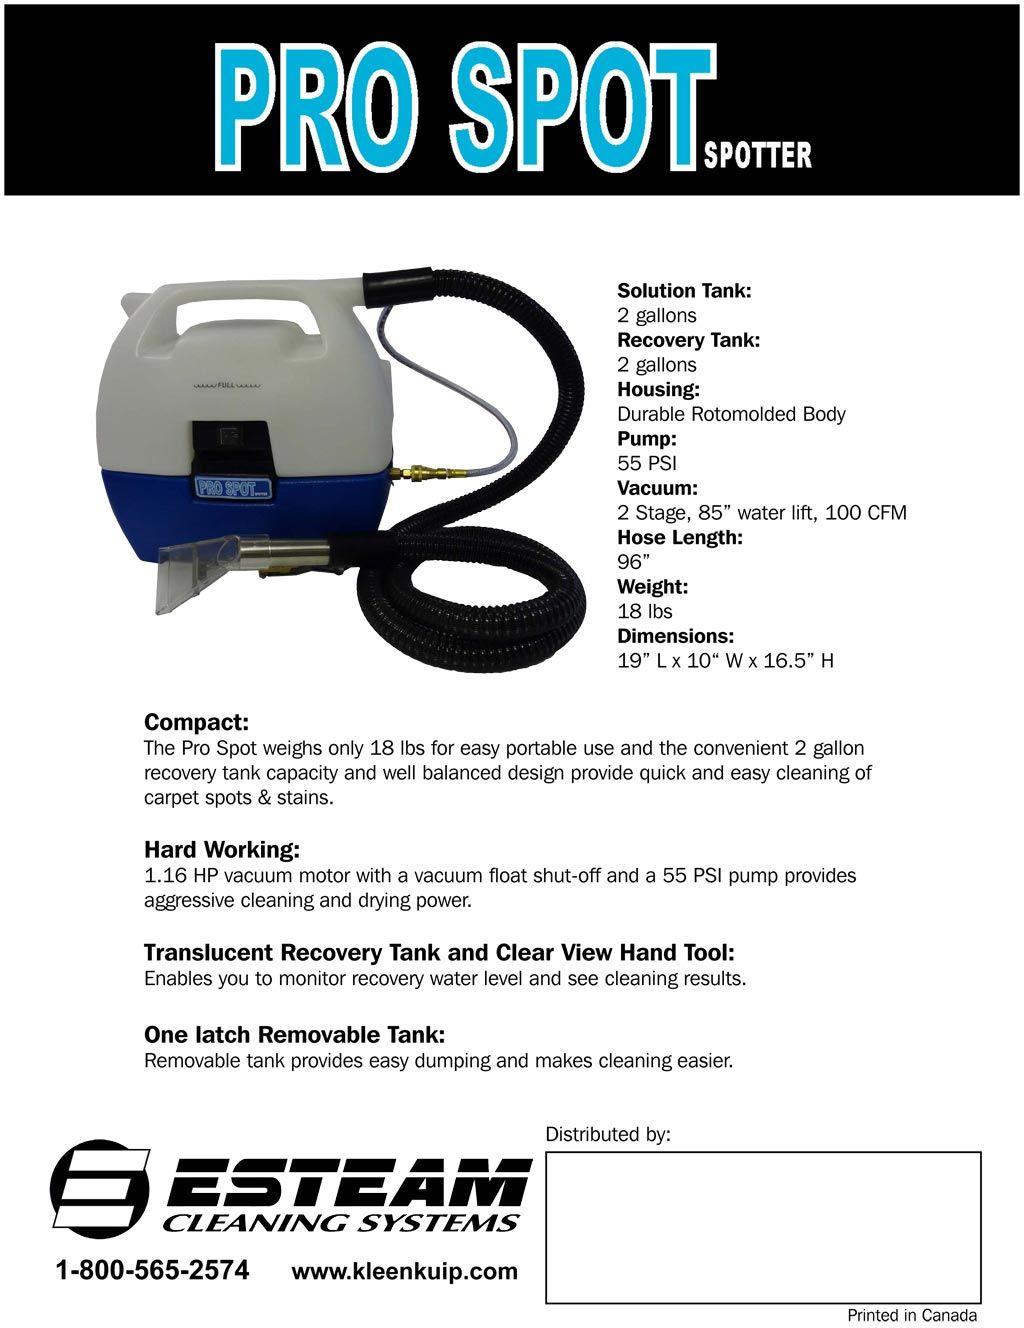 Scrub Spray And Lift Away Dirt And Stains With Powerful Vacuum Suction Clean Carpets Car And How To Clean Carpet Upholstery Cleaning Machine Vacuum Suction